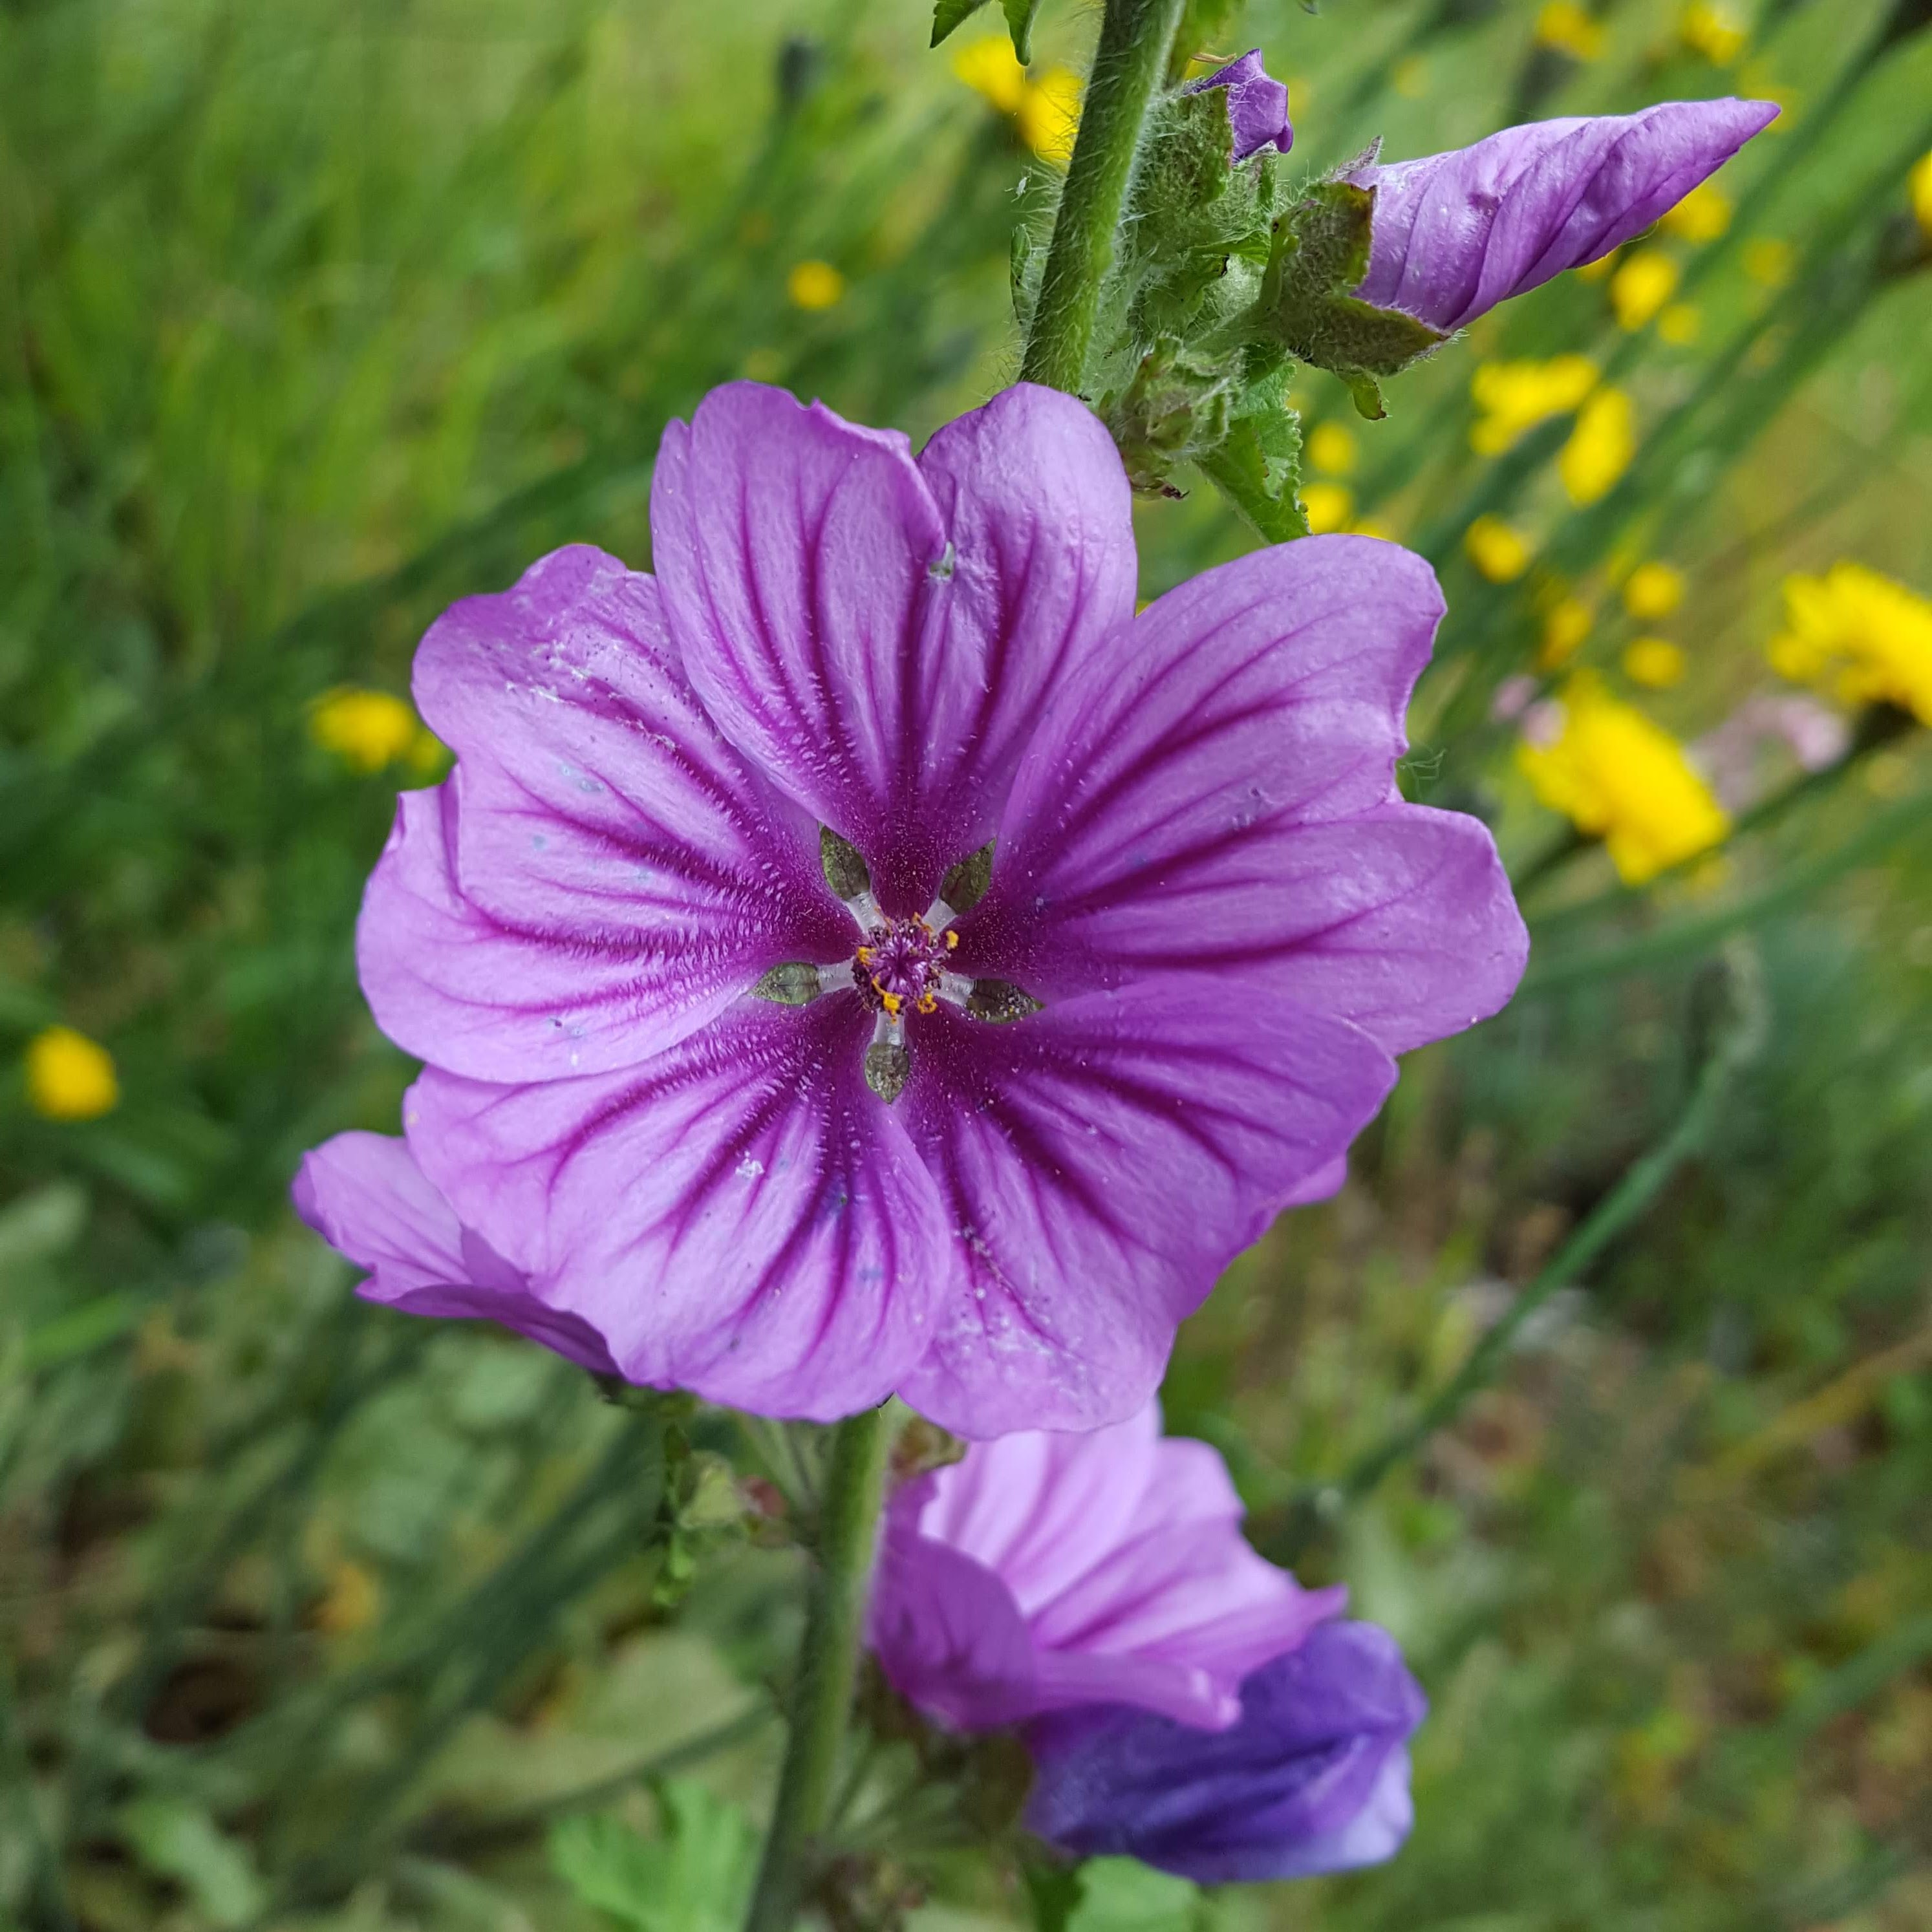 Image of Mallow Flower